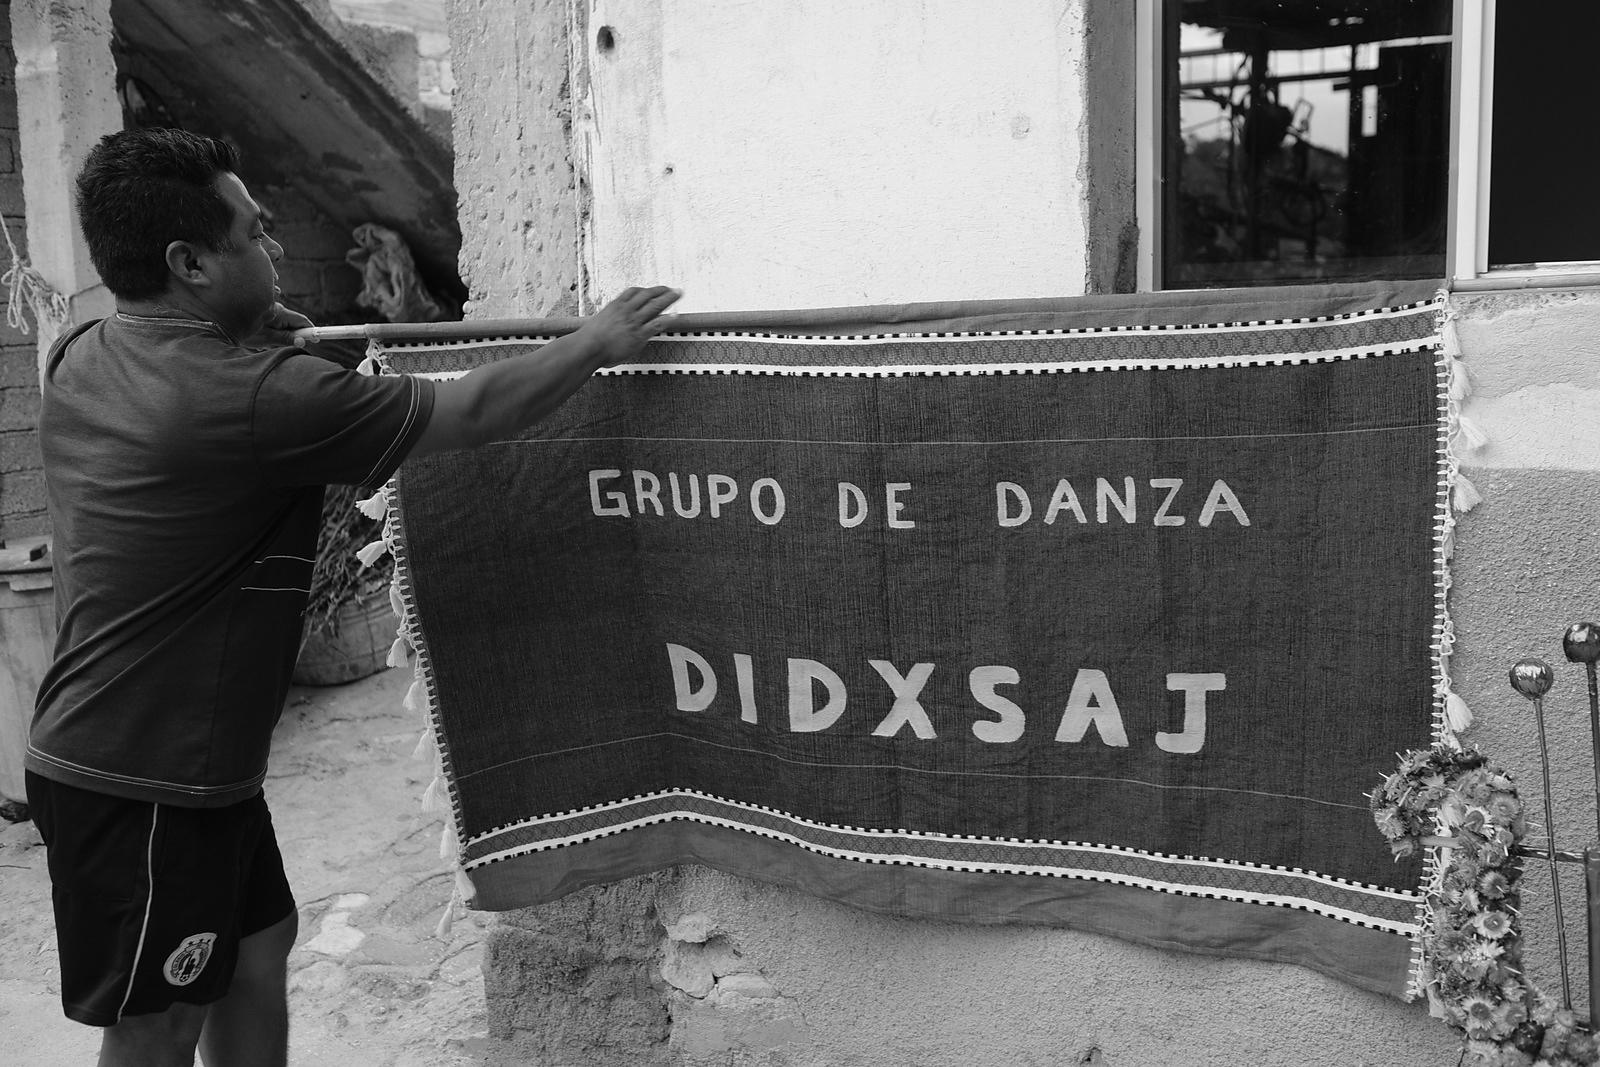 """Didxsaj"" dance group.   Didxsaj is the zapotec language name for a dialect of the language spoken in this town."